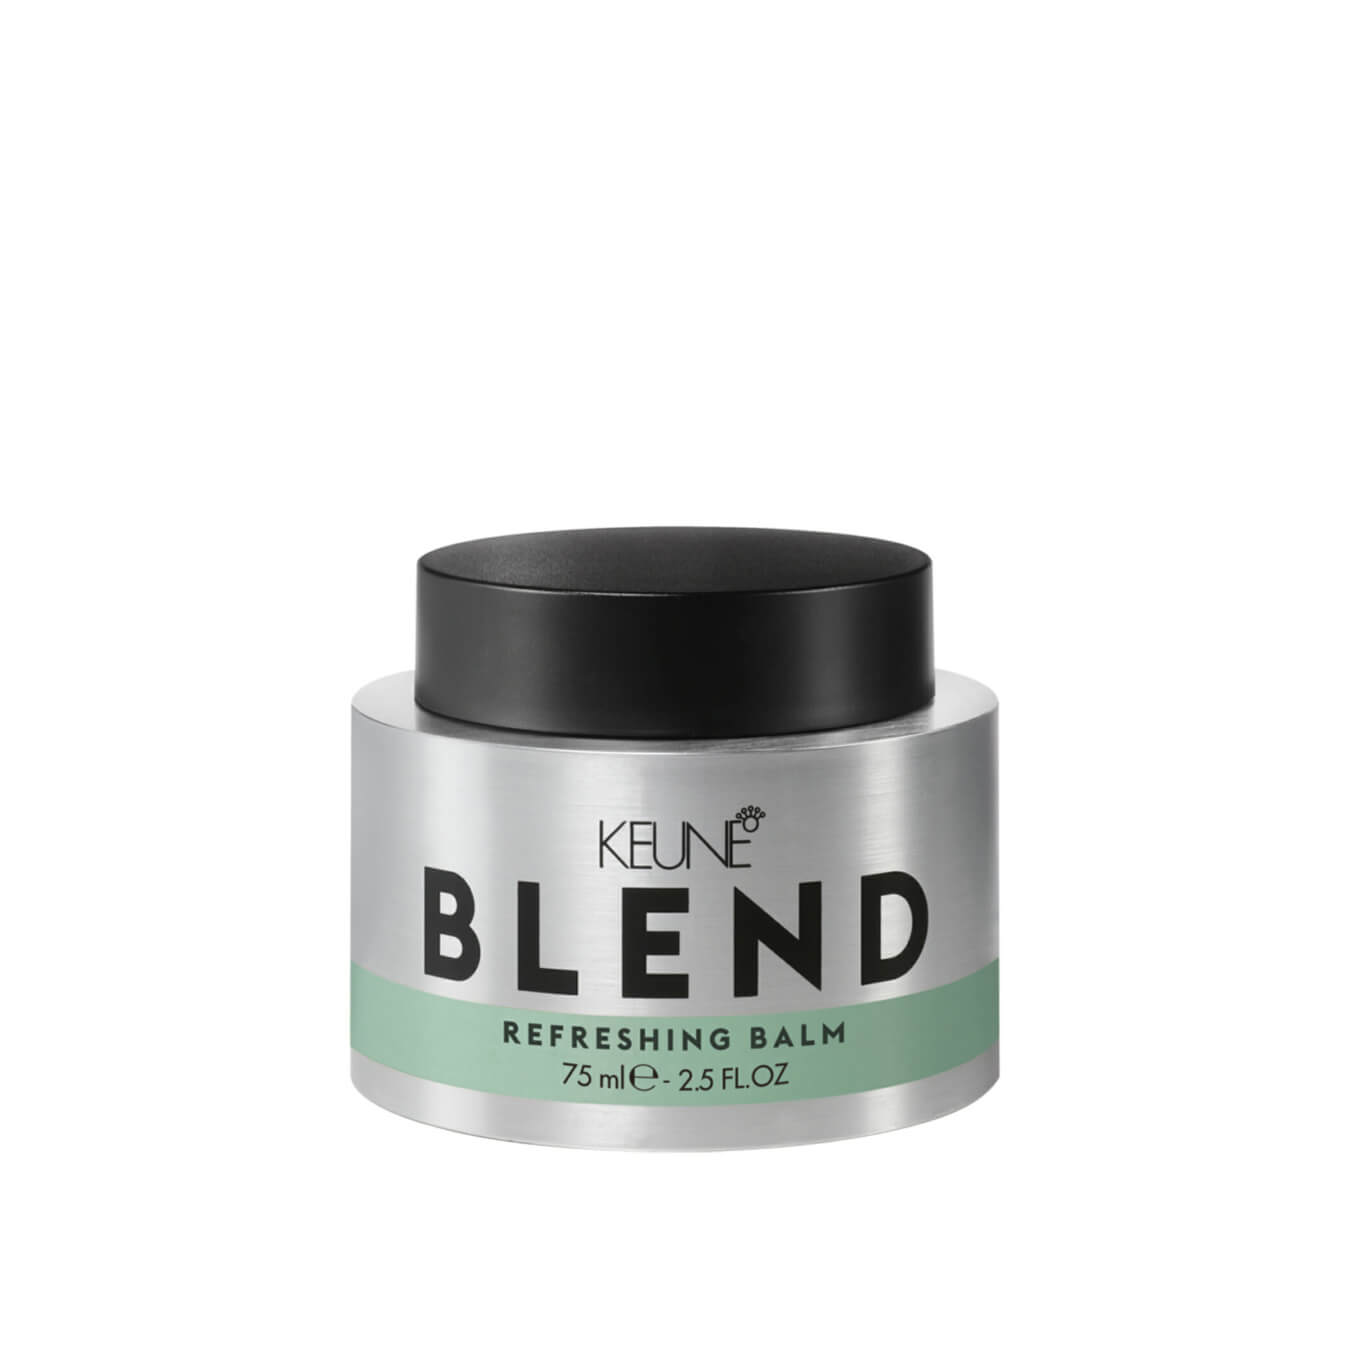 Koop Keune Blend Refreshing Balm 75ml